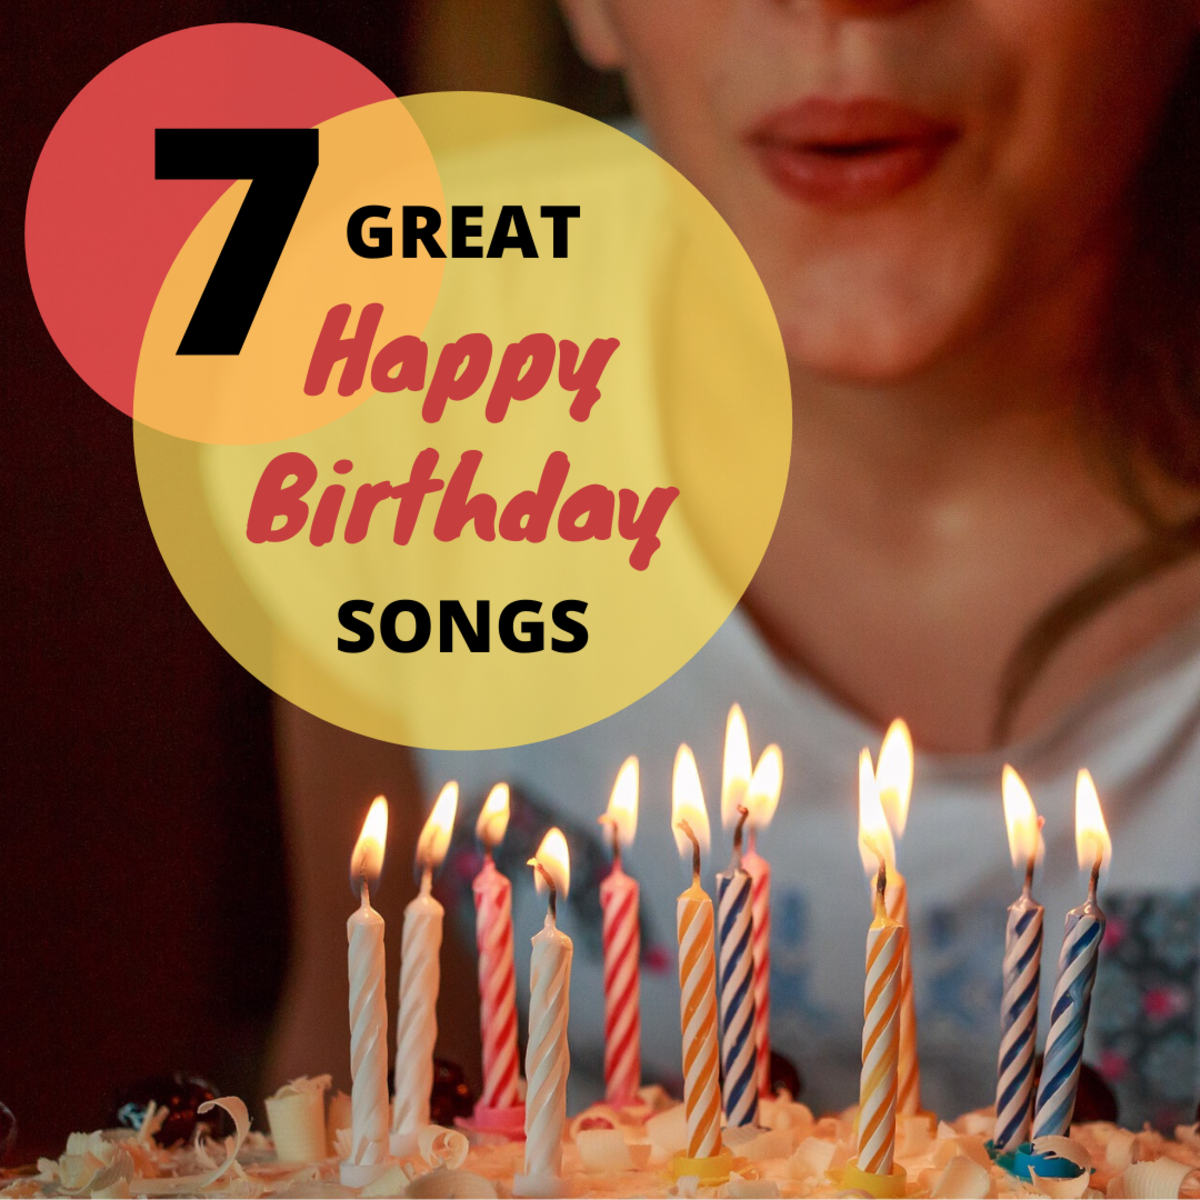 """Happy Birthday to You"" is a classic, but it's not the only song you can sing at a birthday party. Check out these great song options!"